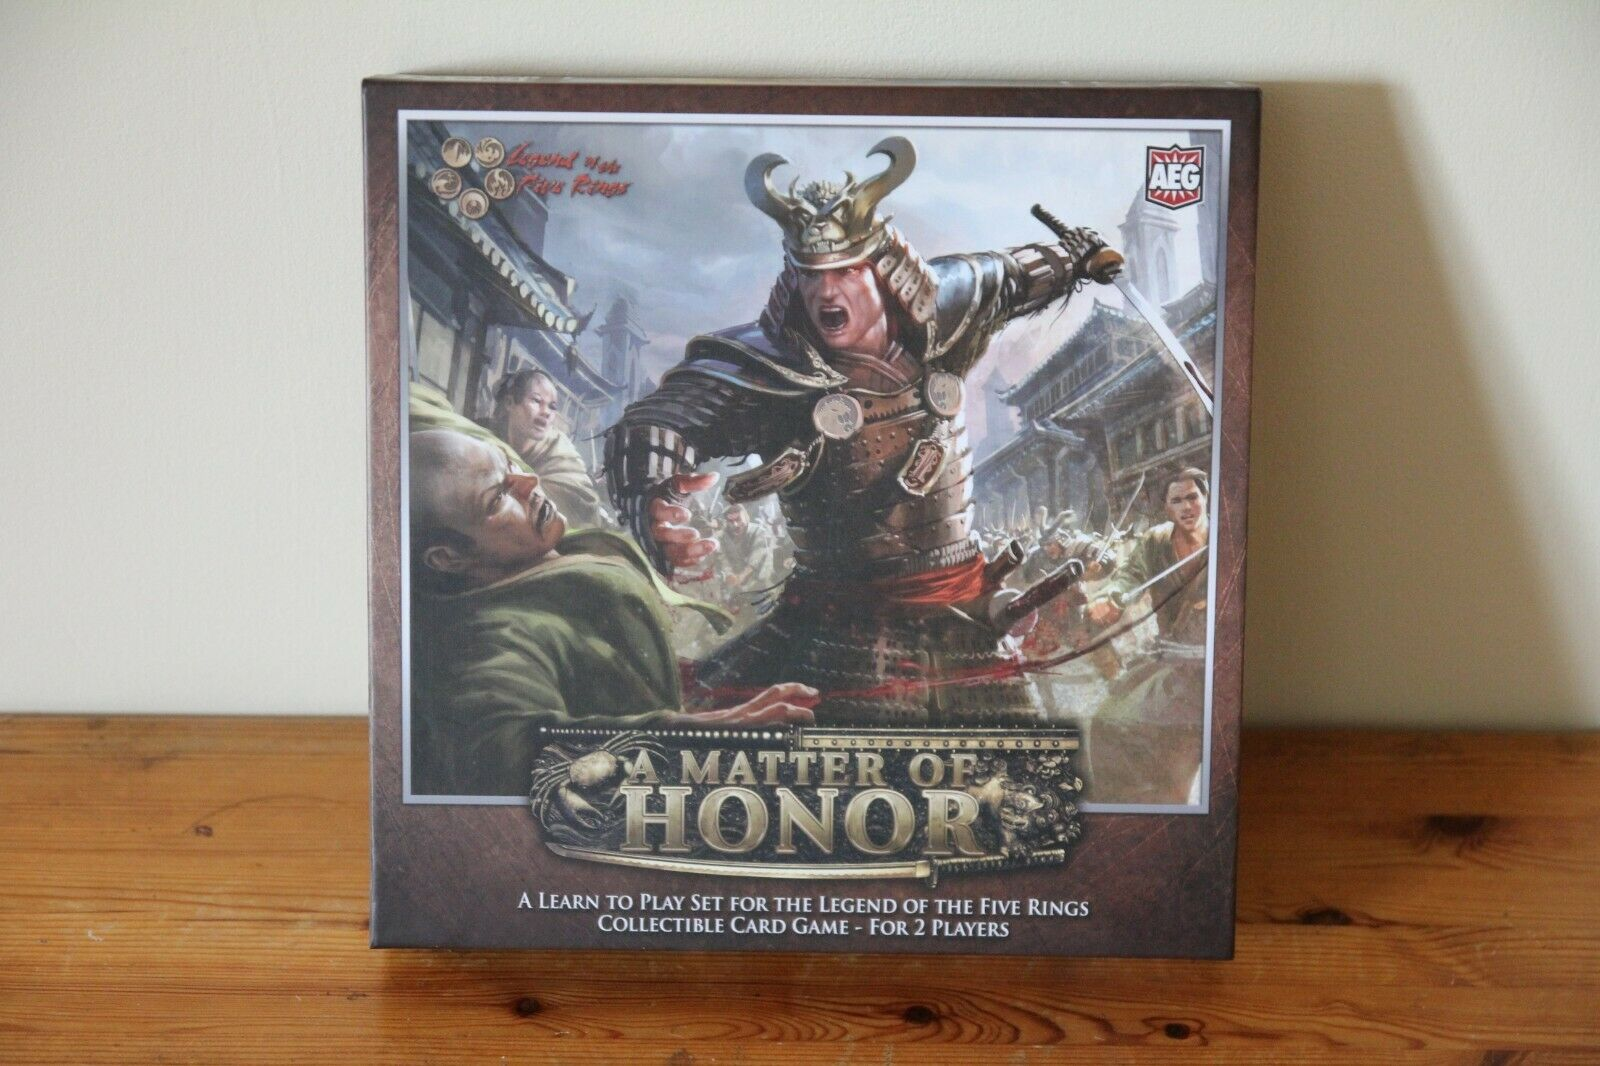 A Matter of Honor - L5R- Alderac Entertainment Group - Battle of 5 rings